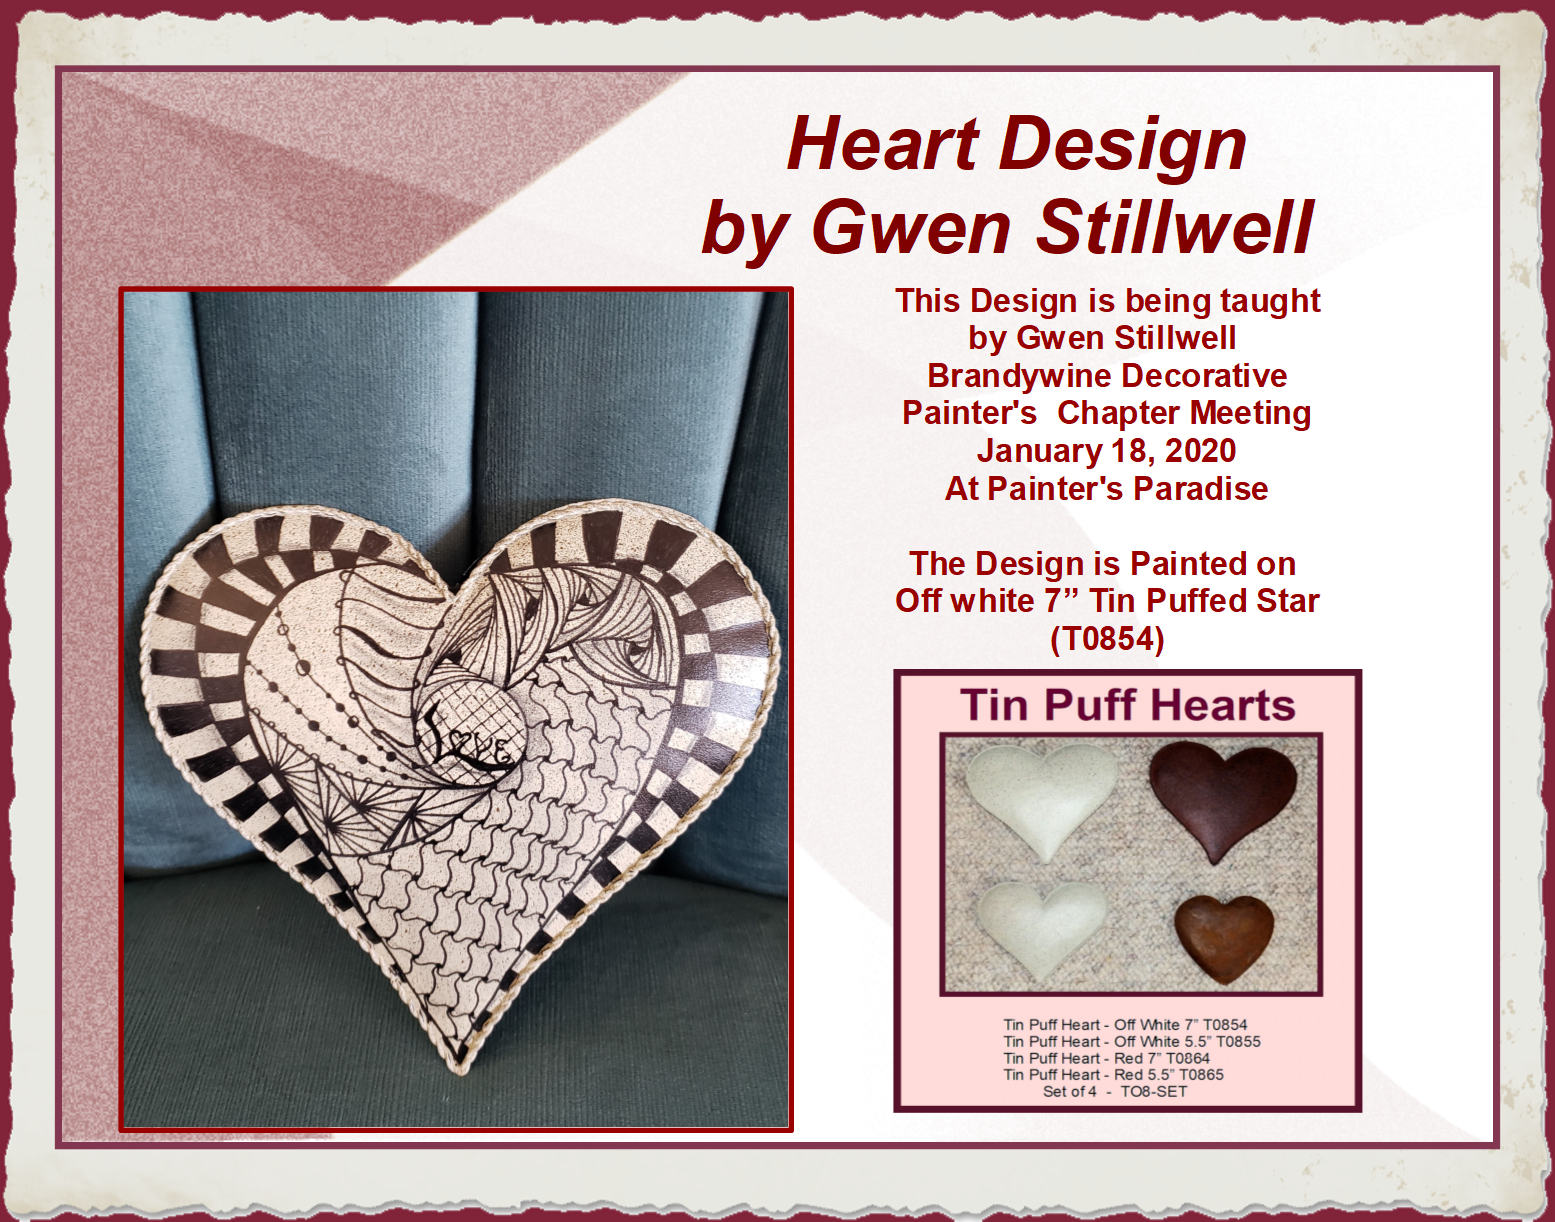 gwen-stillwell-design-20200118-framed.jpg